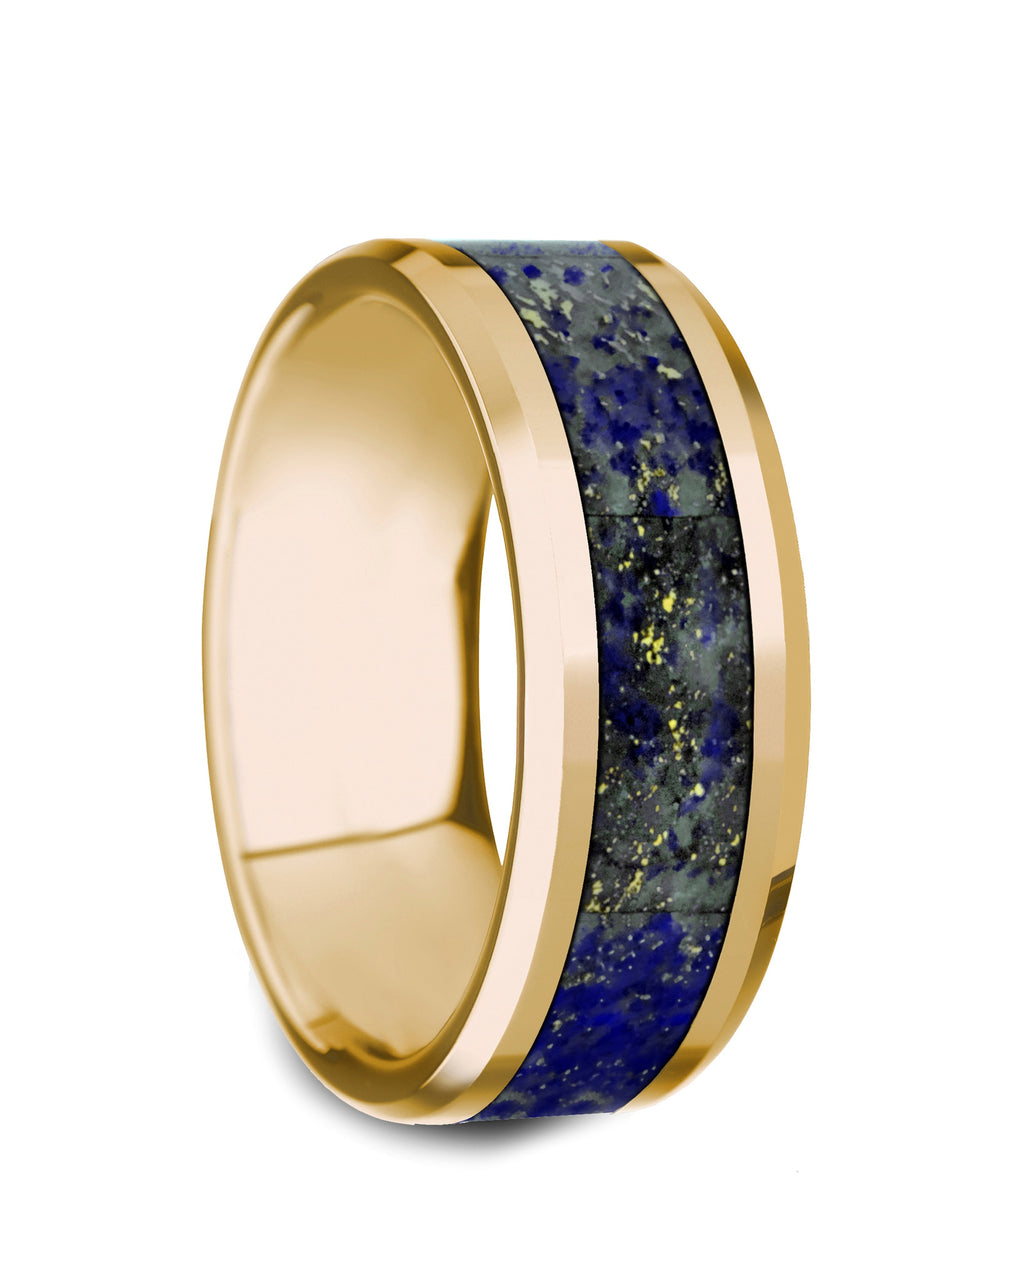 REMY    Polished 14K Yellow Gold with Blue Lapis Lazuli Inlay & Beveled Edges    |    8mm - TCRings.com